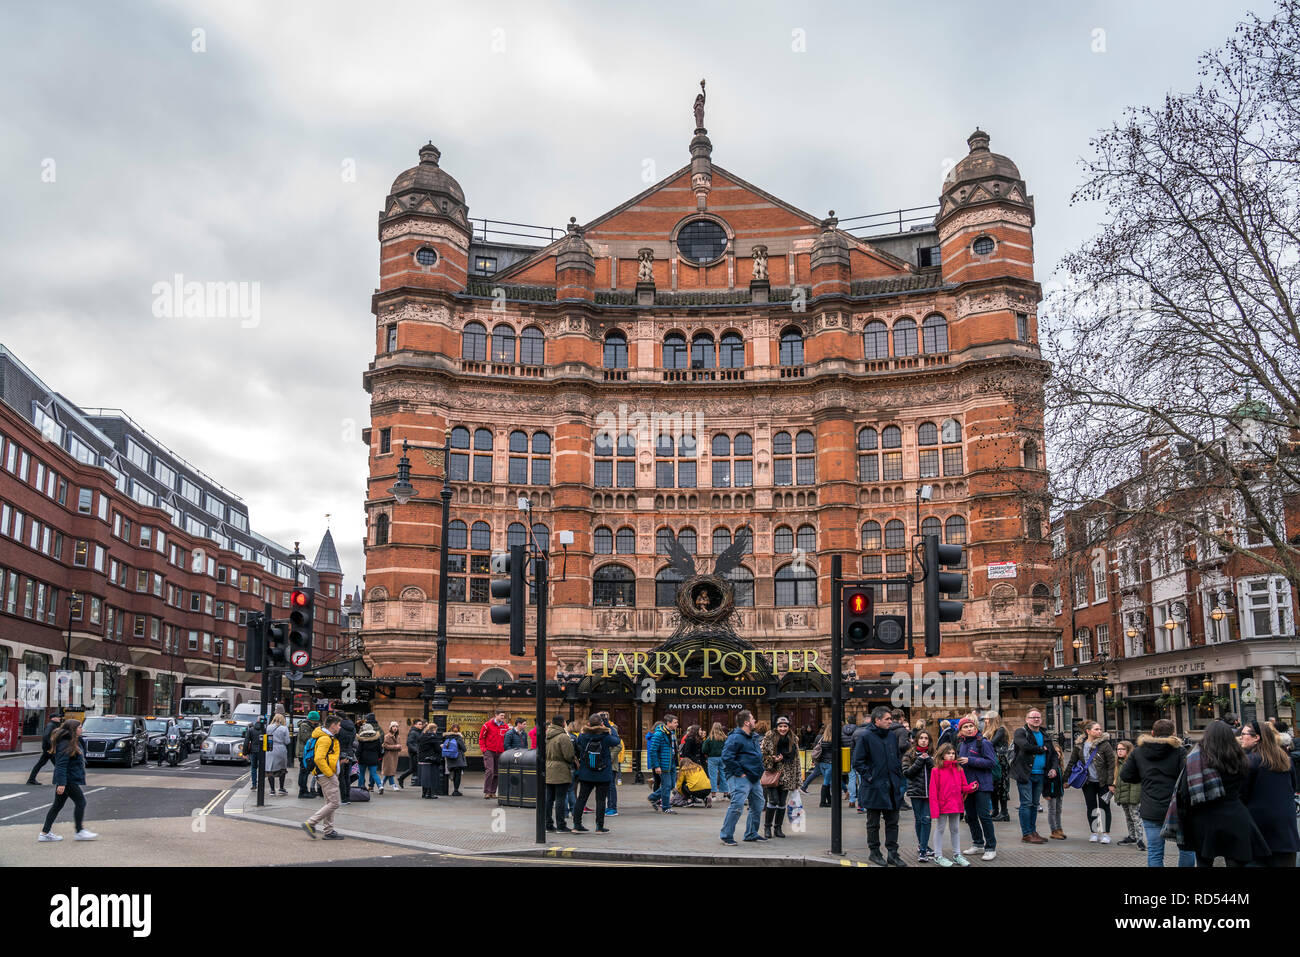 Harry Potter And The Cursed Child Musical im Palace Theatre, Westend, London, Vereinigtes Königreich Großbritannien, Europa |  Palace Theatre with Har - Stock Image